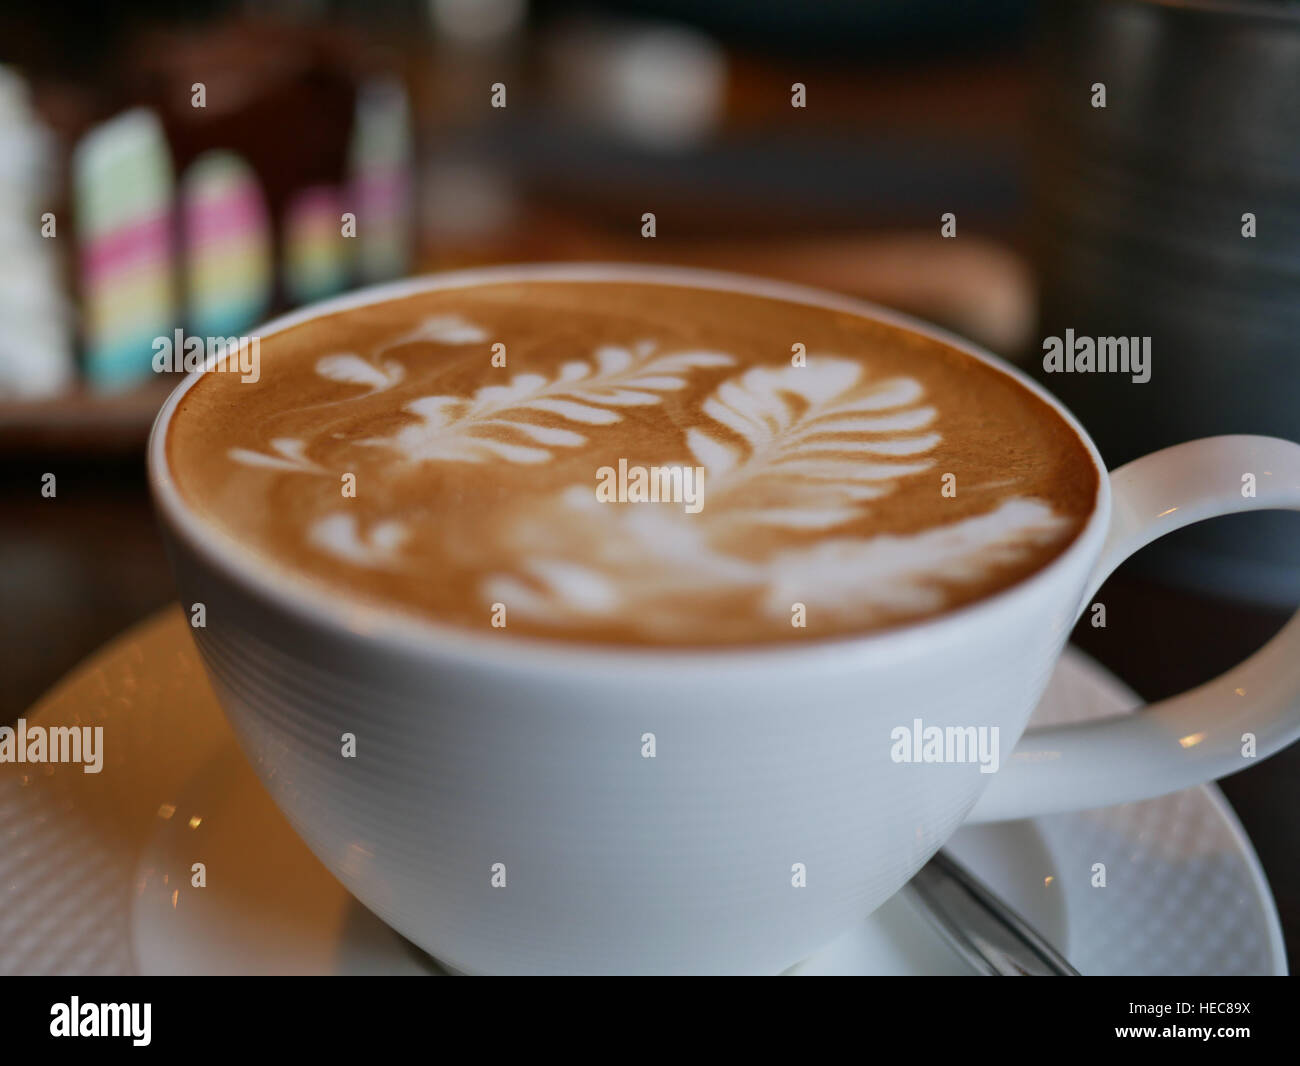 The Texture of Latte art leaf on The Top of Hot Coffee - Stock Image